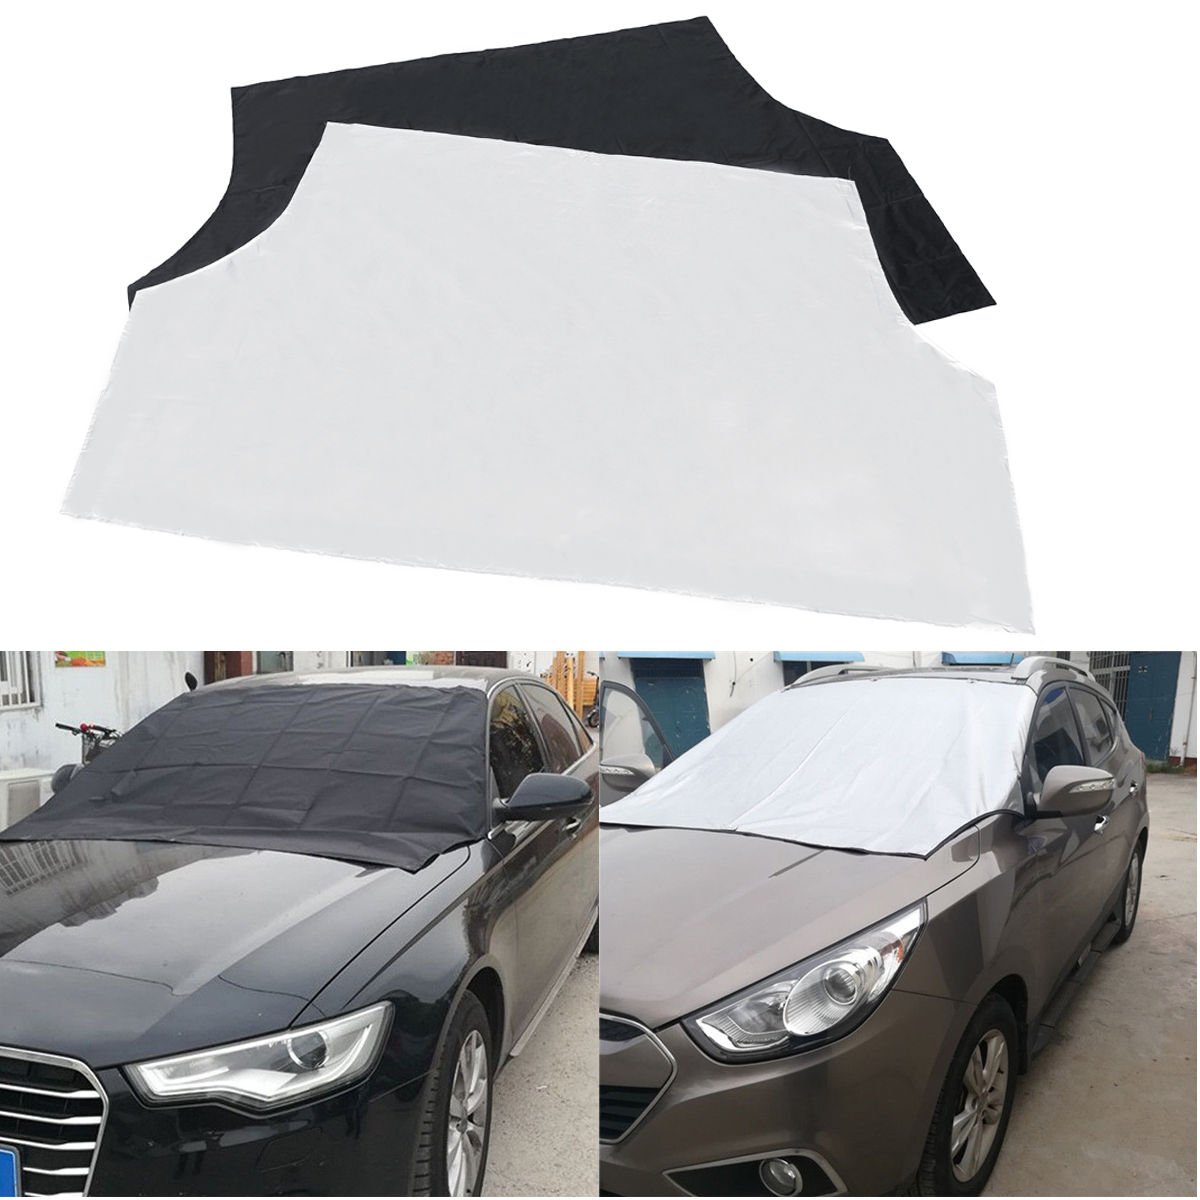 215 X 125cm Car Magnet Windshield Snow Ice Frost Sun Cover Exterior Protection Shield Pouch For Truck Sunshade Cover